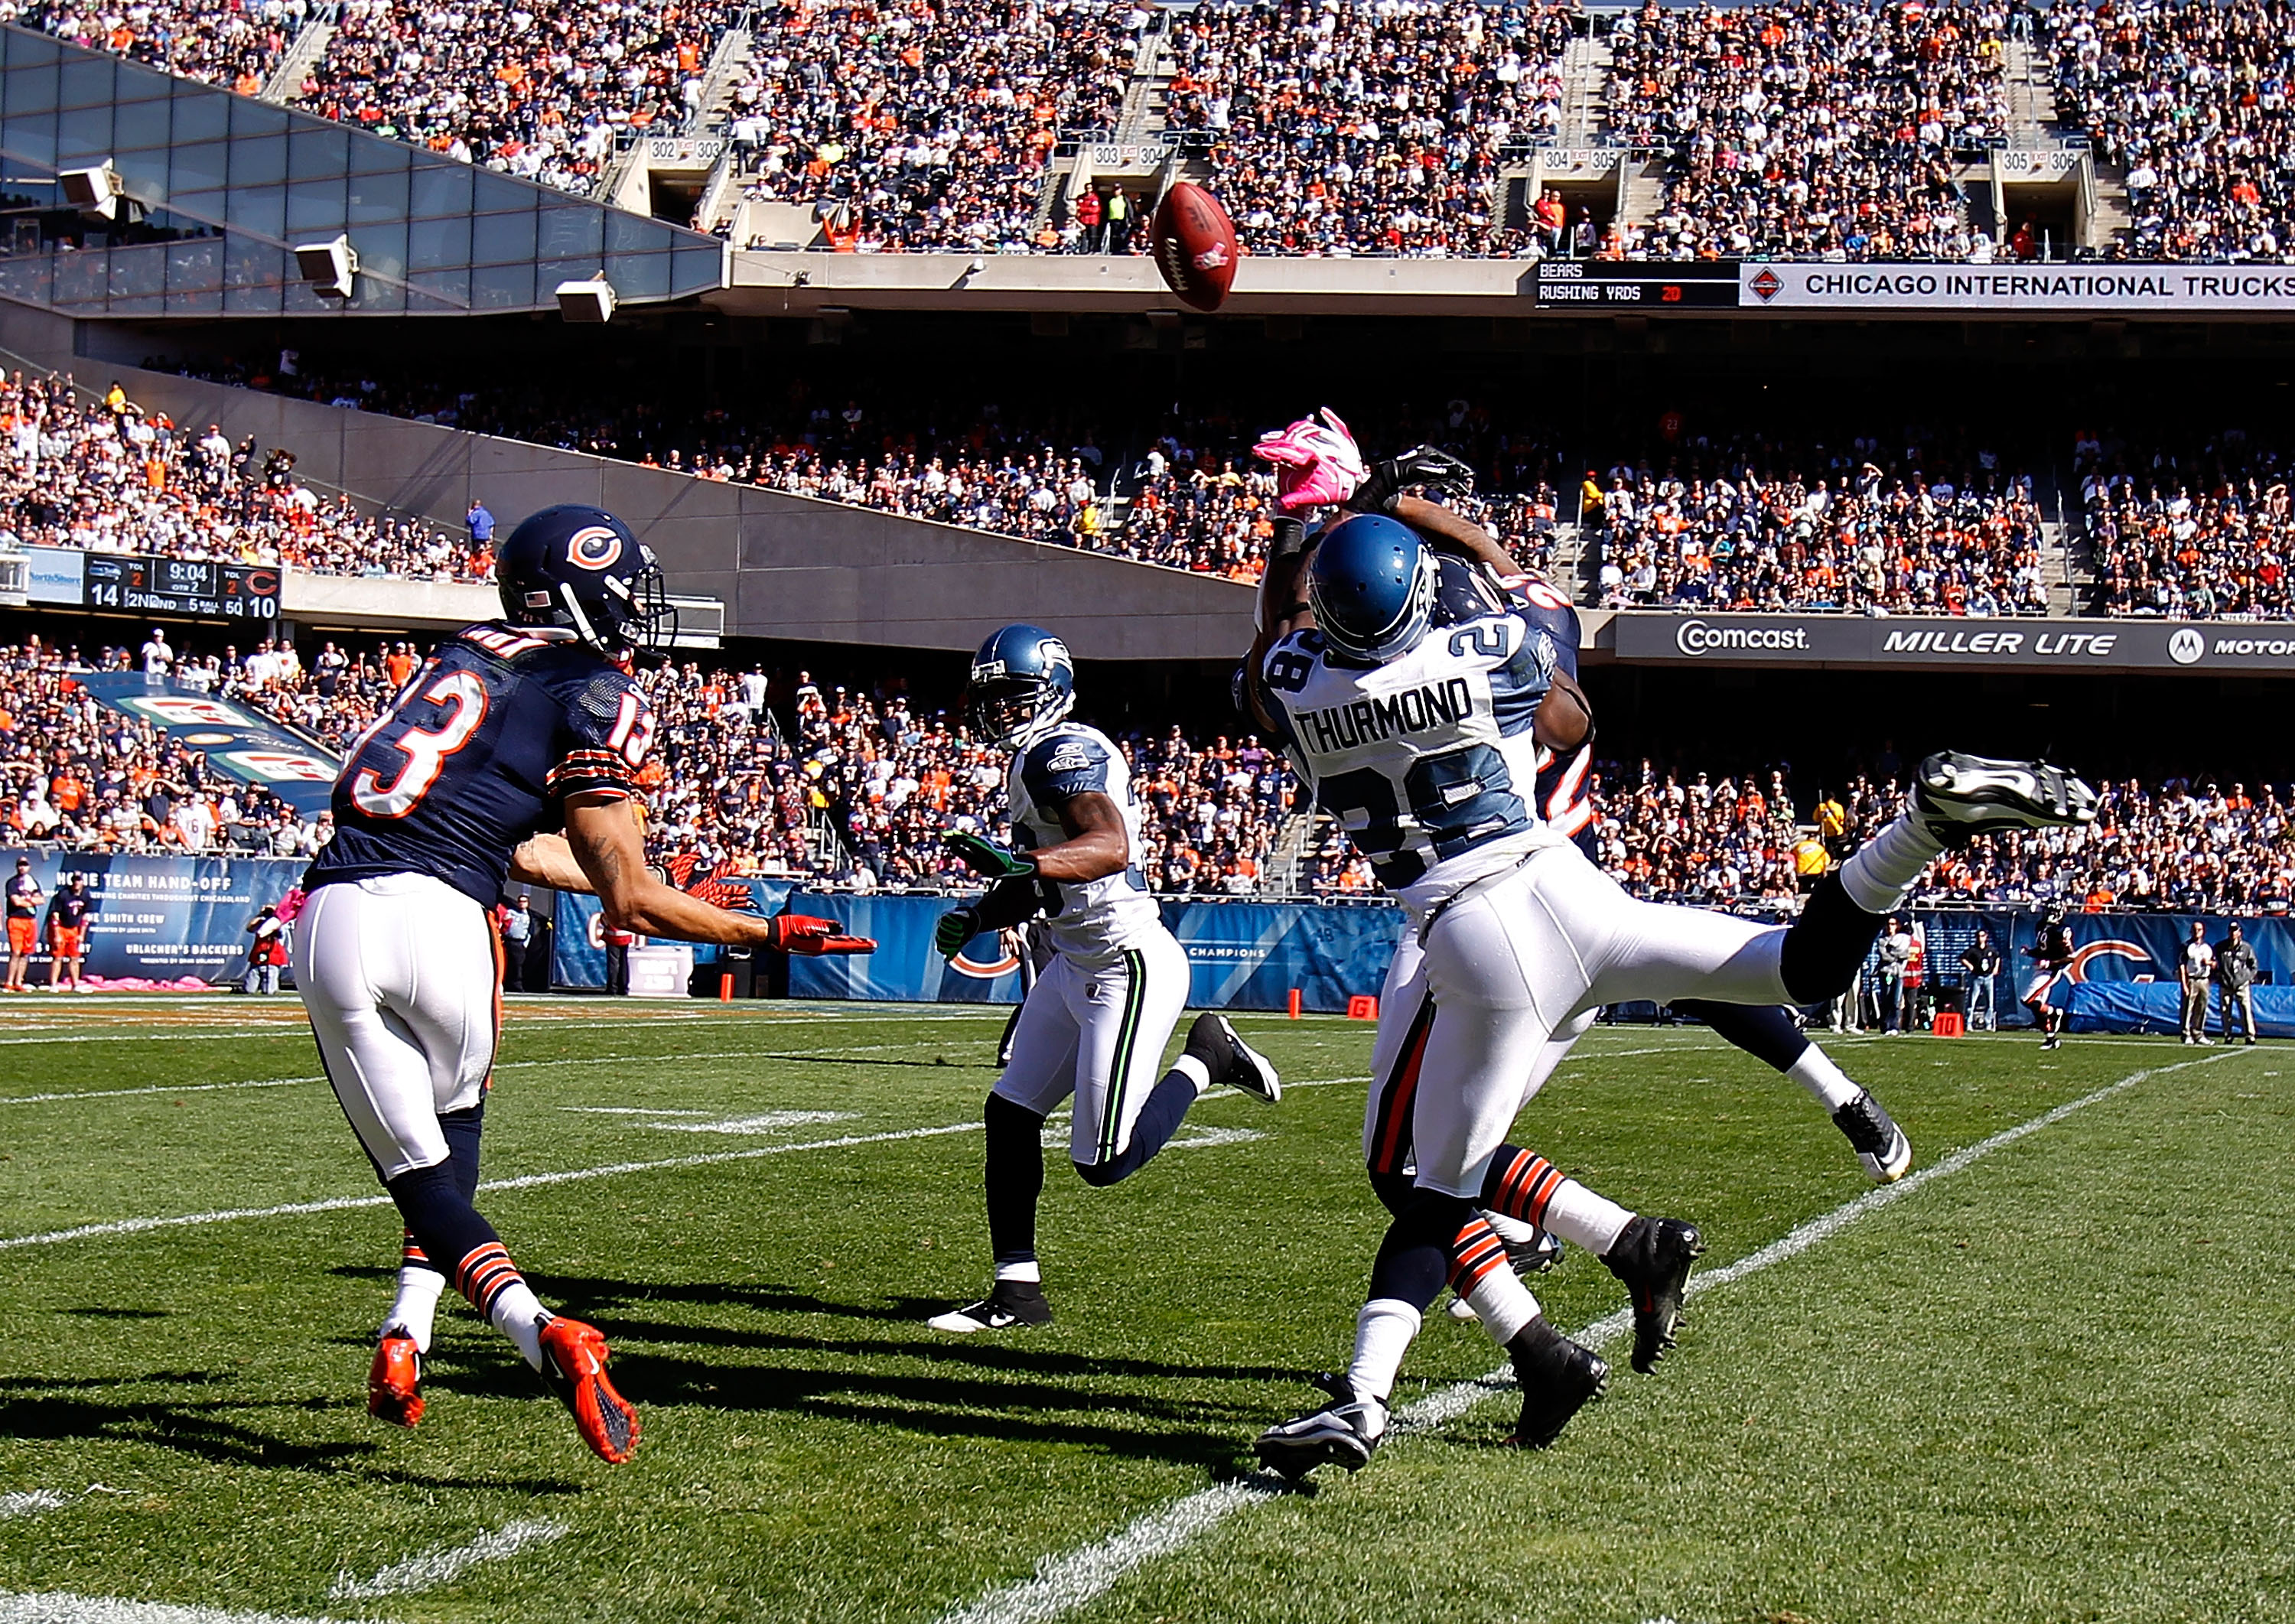 CHICAGO - OCTOBER 17: Walter Thurmond #38 of the Seattle Seahawks breaks up a pass intended for Devin Hester #23 of the Chicago Bears as Johnny Knox #13 attempts a catch at Soldier Field on October 17, 2010 in Chicago, Illinois. The Seahawks defeated the